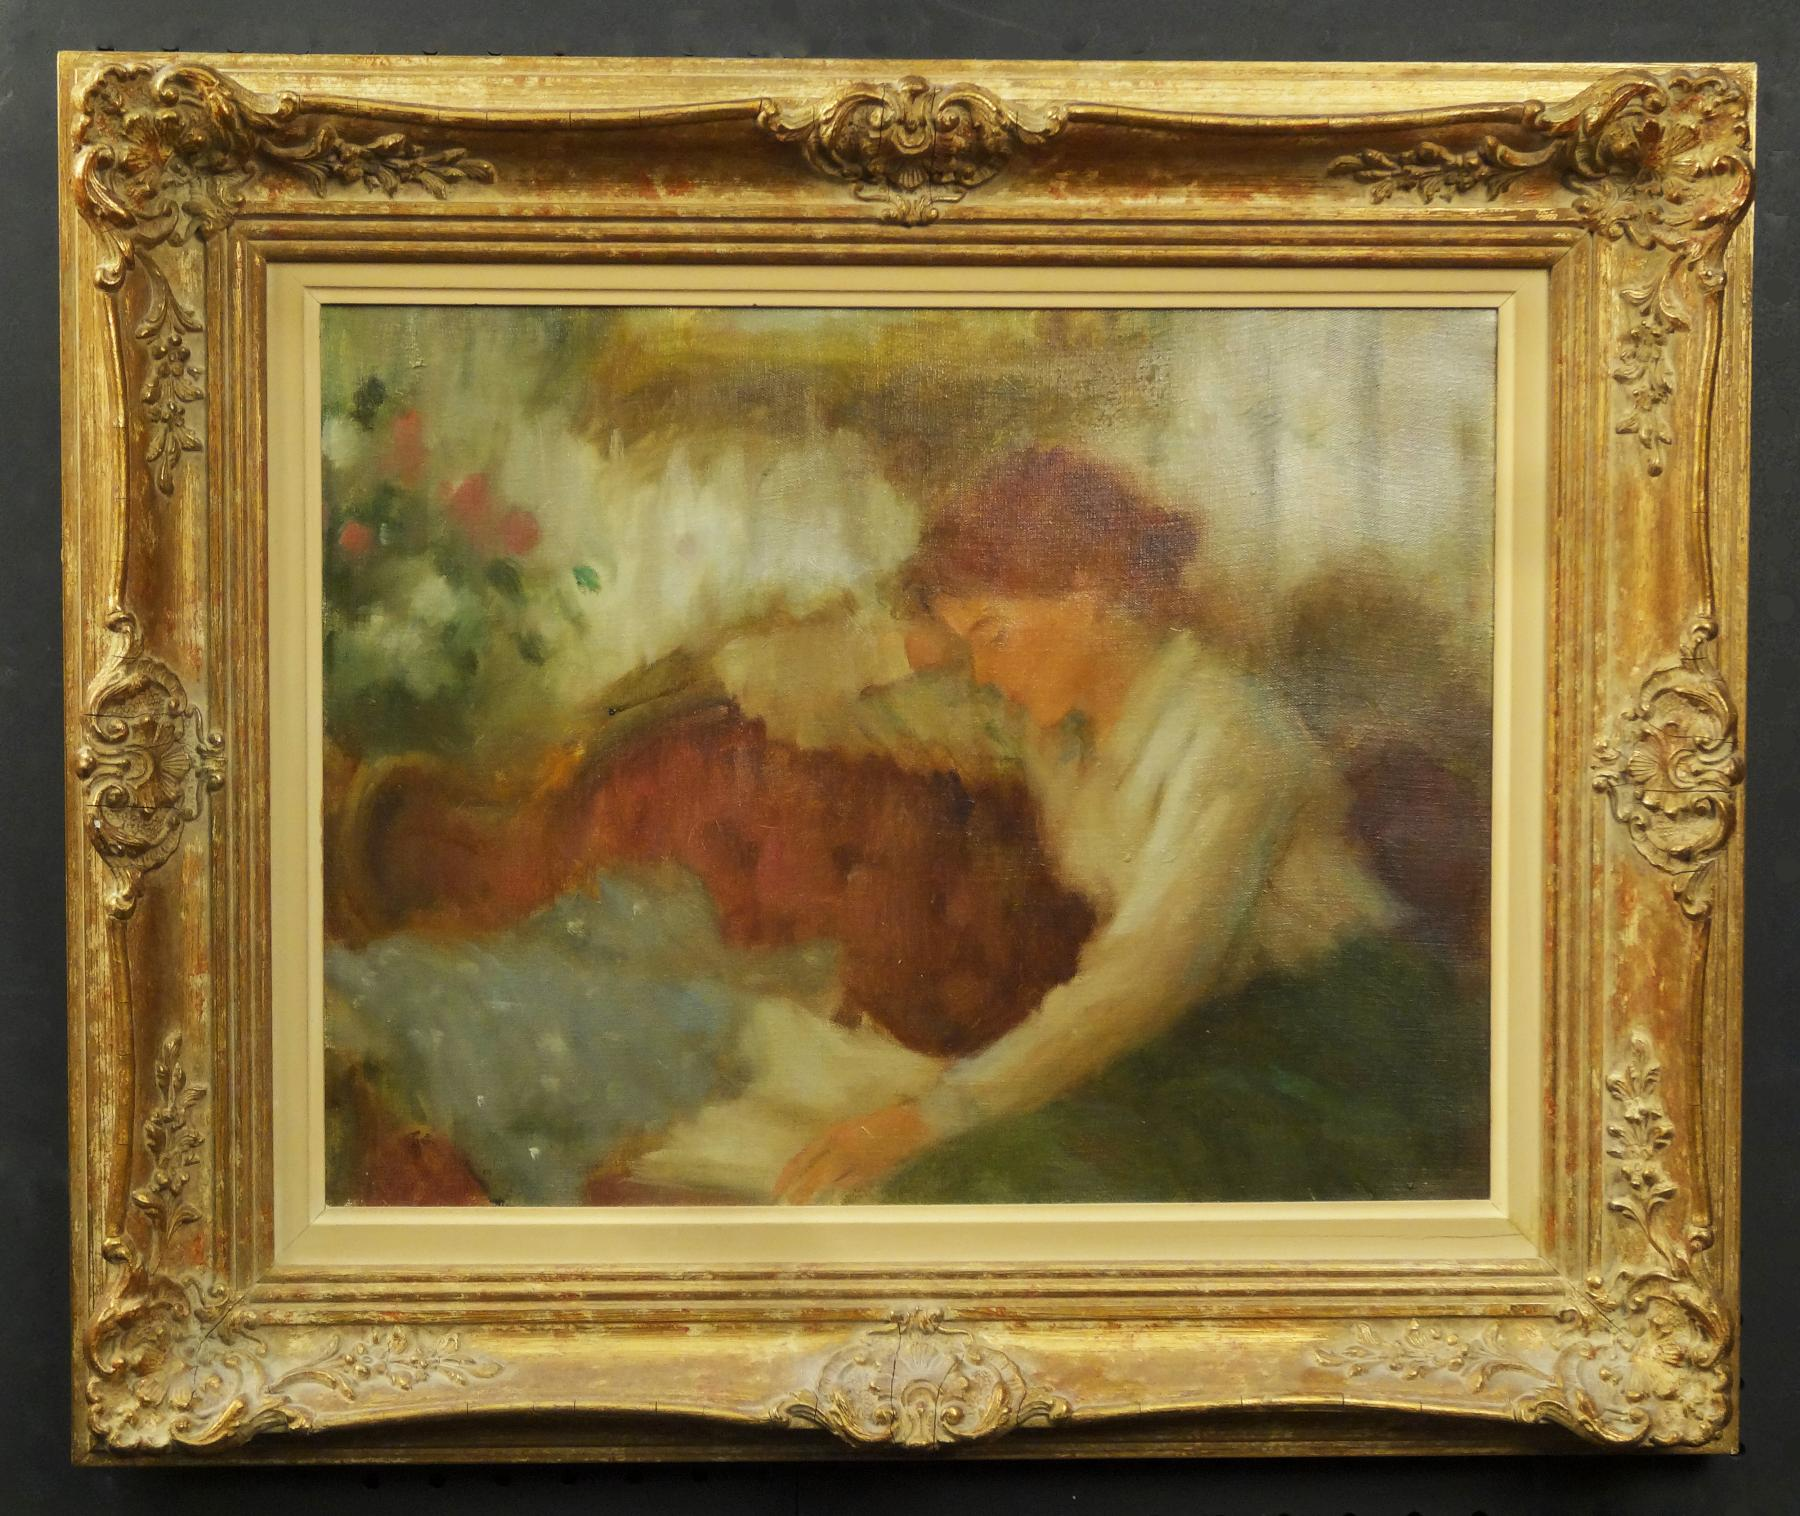 Gilded Framed Oil Painting of a Woman Reading